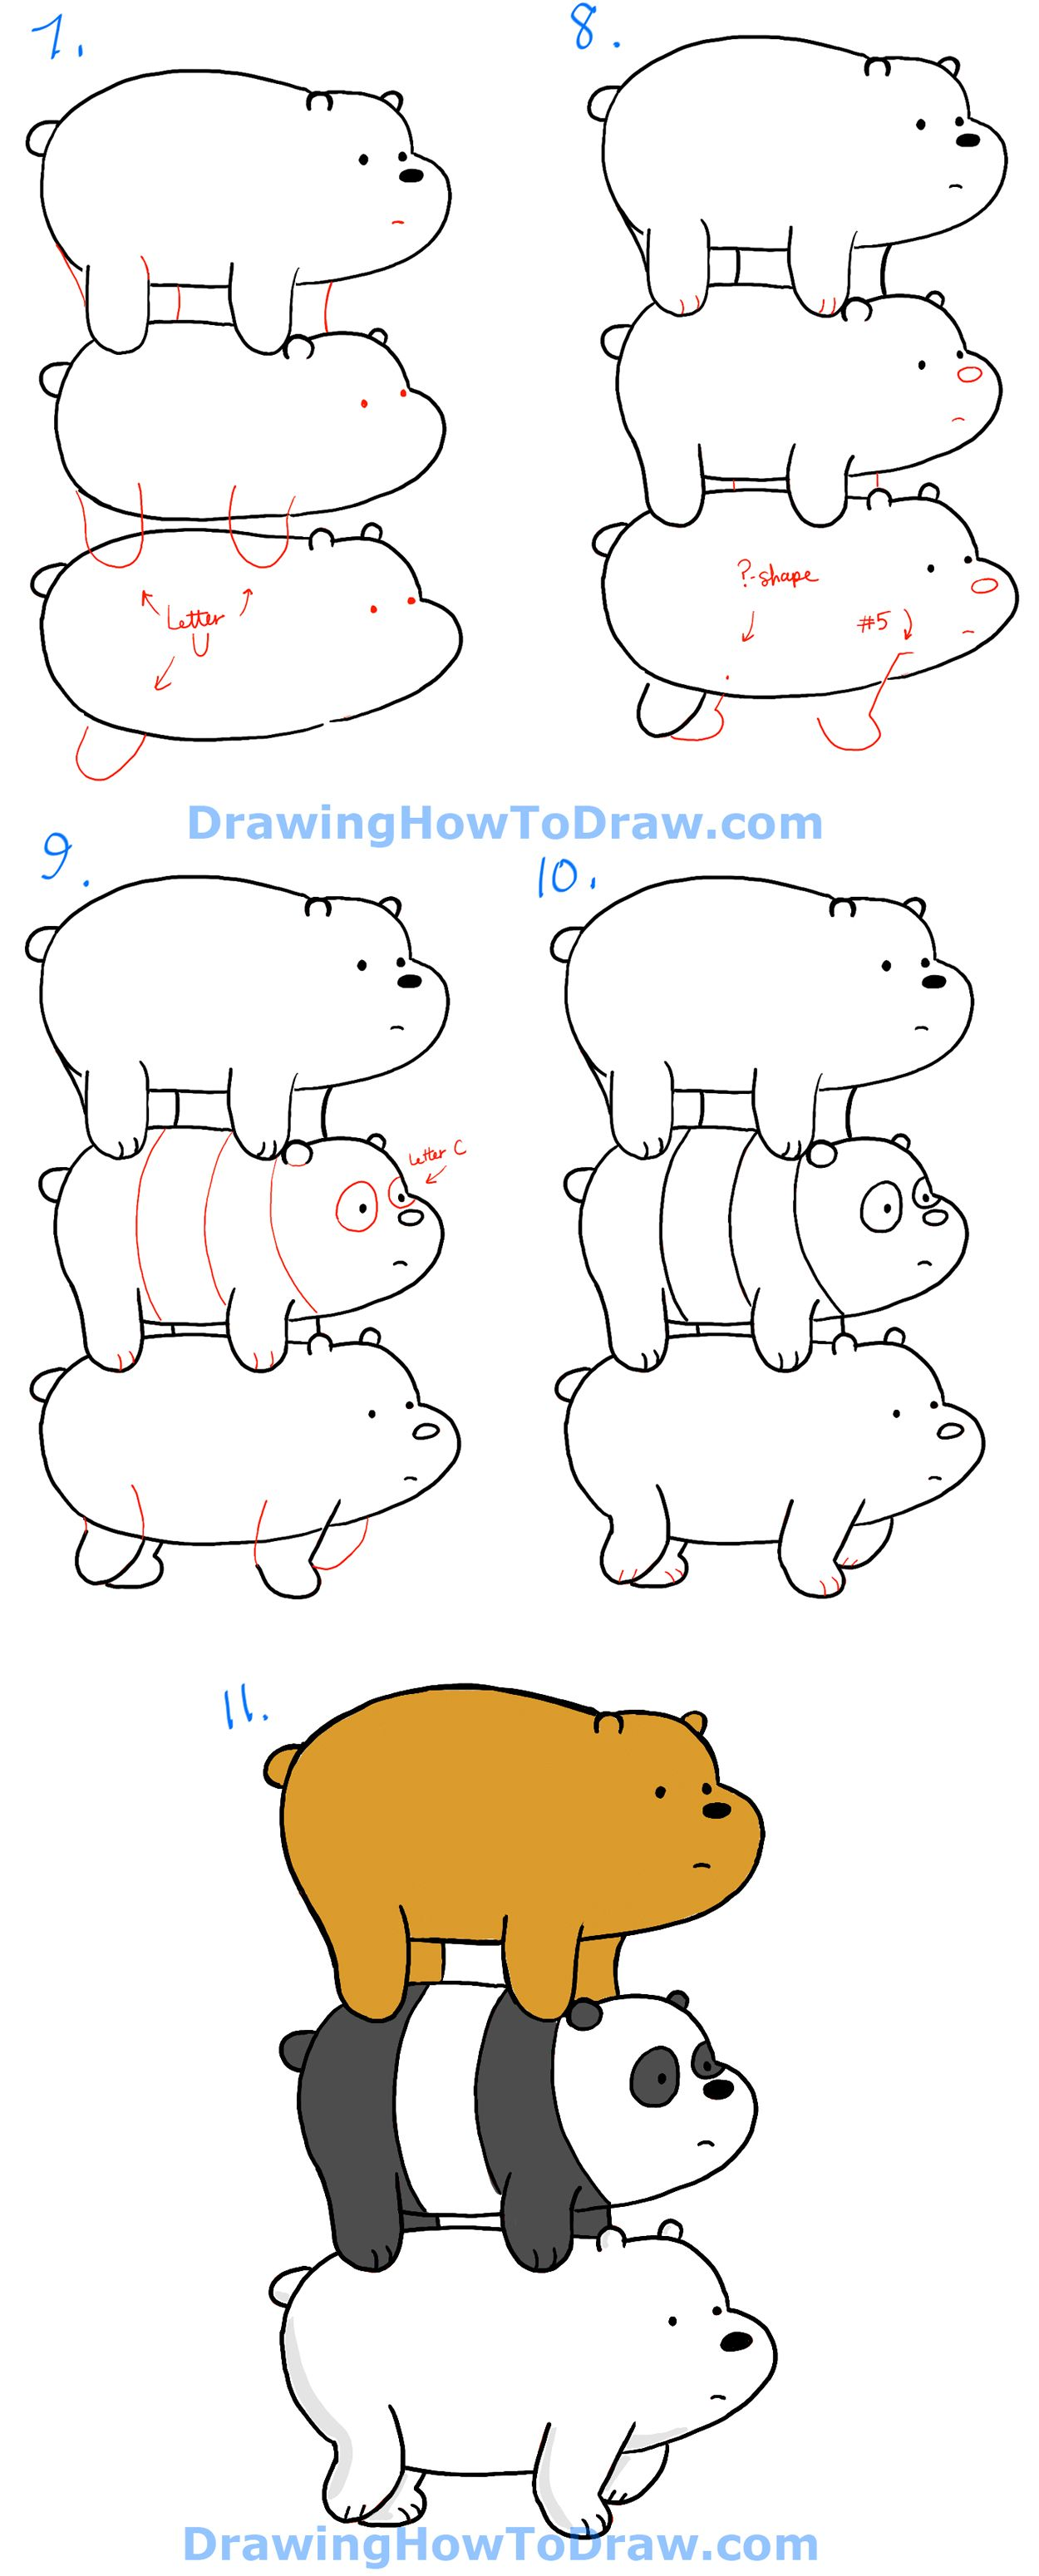 Uncategorized Step By Step How To Draw A Panda how to draw grizzly panda and ice bear from we bare bears bearstack step by drawing tut